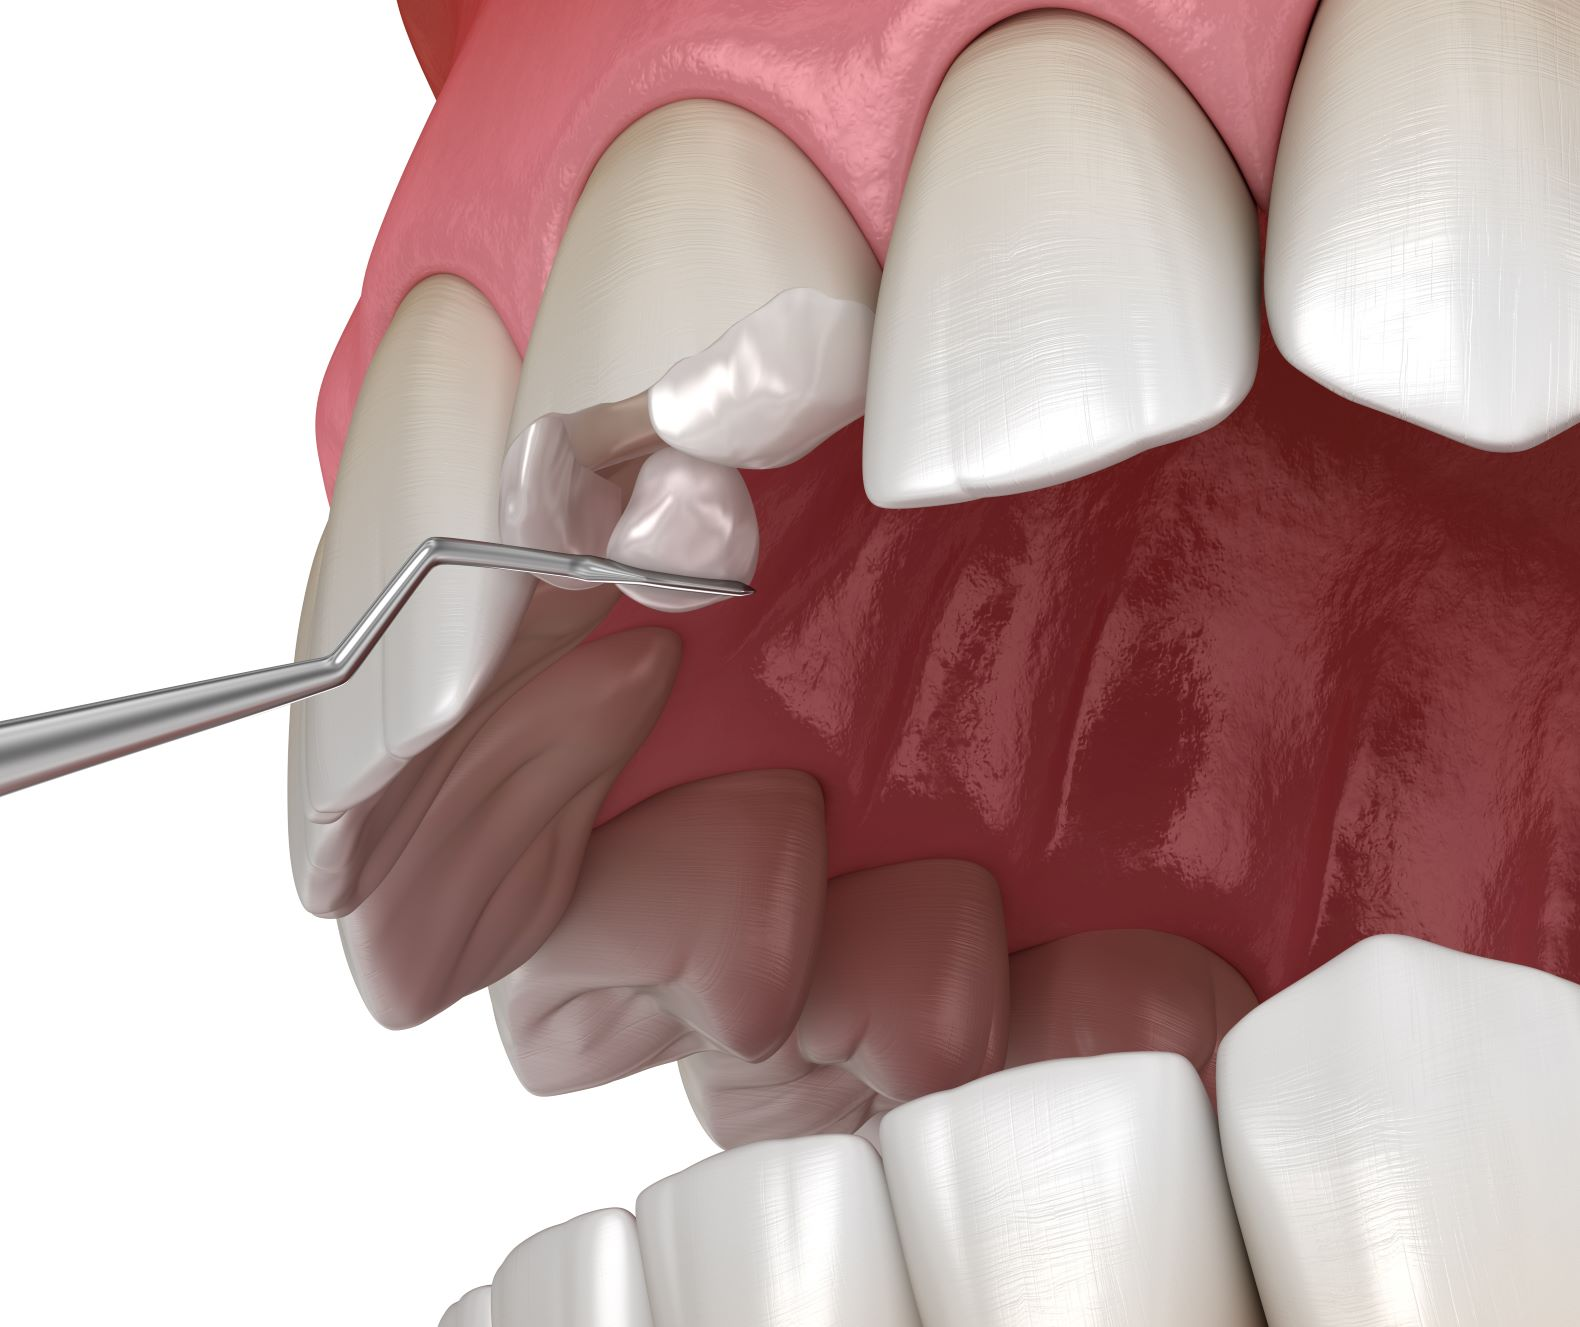 Chipped Tooth Repair - Cosmetic Dental Bonding - Advanced Dentistry of Charlotte